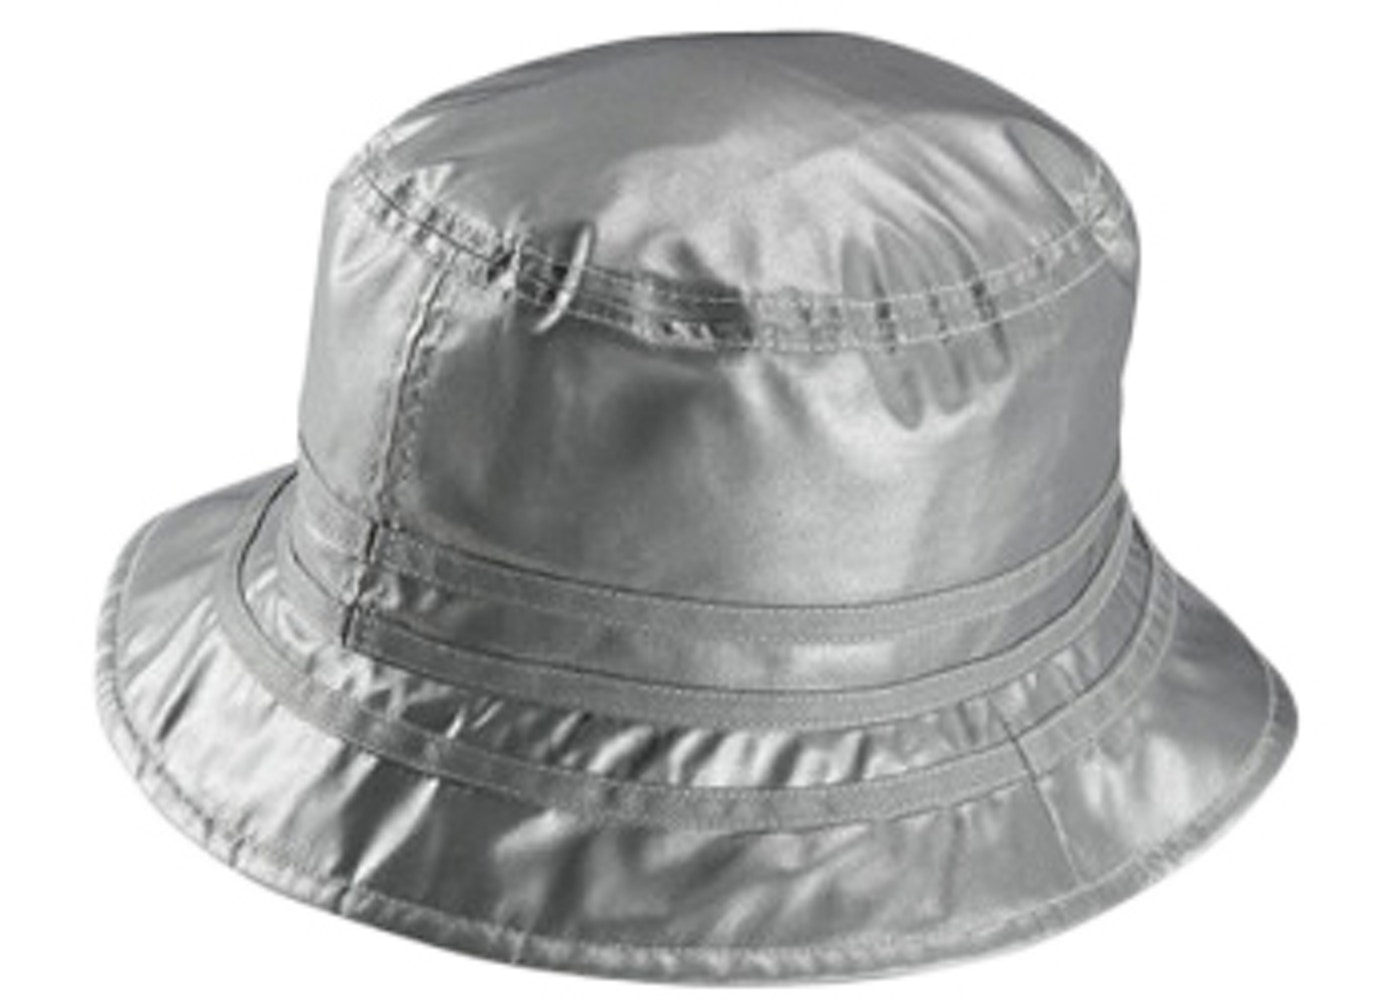 9a748ae9e513a Palace adidas Reversible Bucket Hat Reflective Grey - SS15